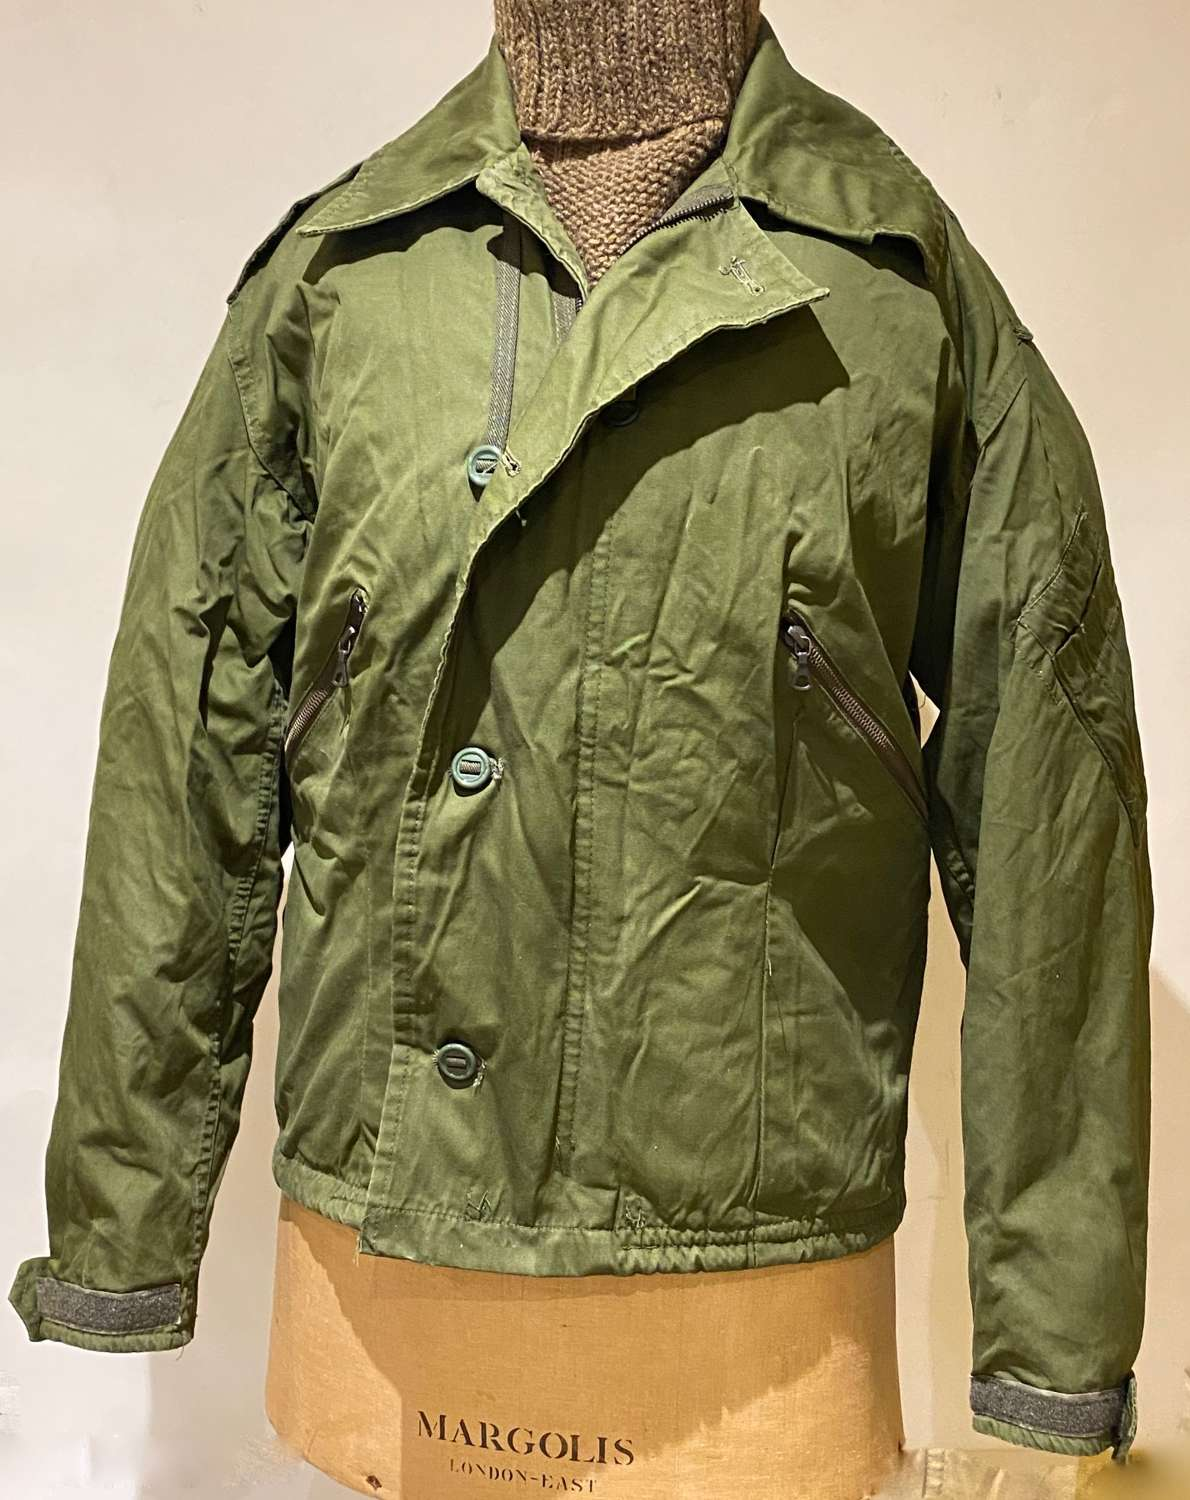 RAF Cold War Period Cold Weather Flying Jacket.